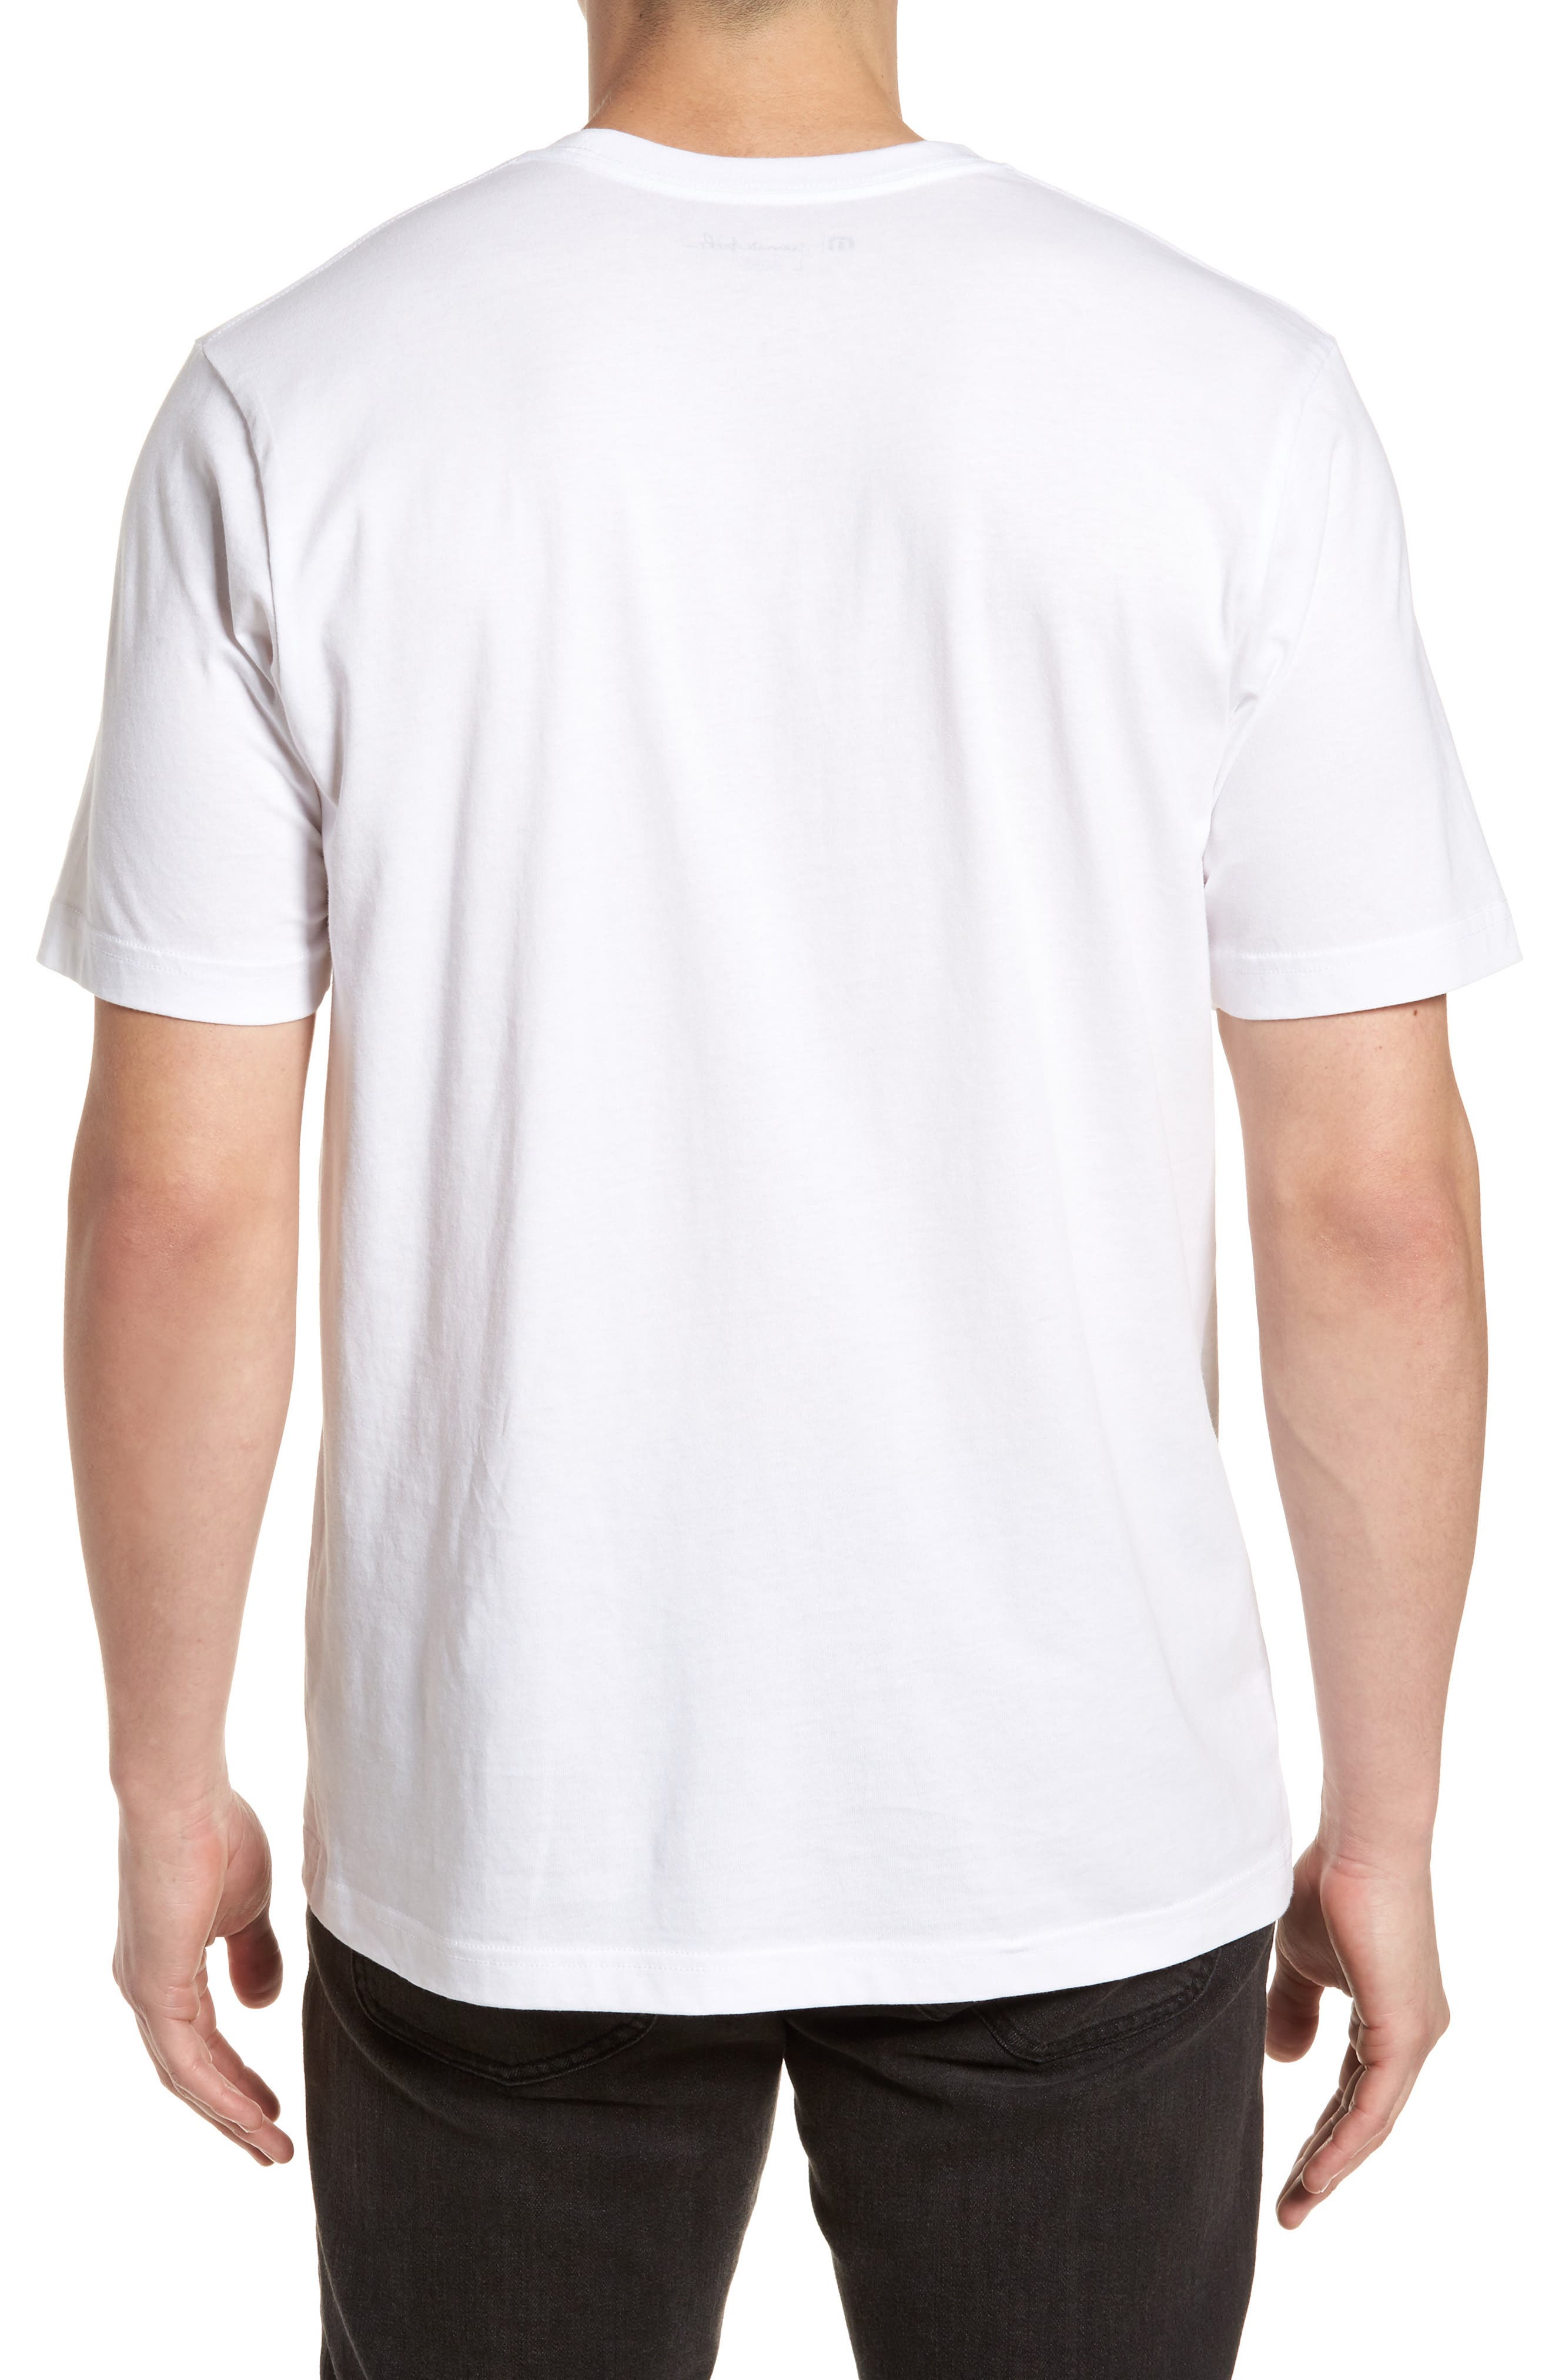 Windy Vibes Graphic T-Shirt,                             Alternate thumbnail 2, color,                             White